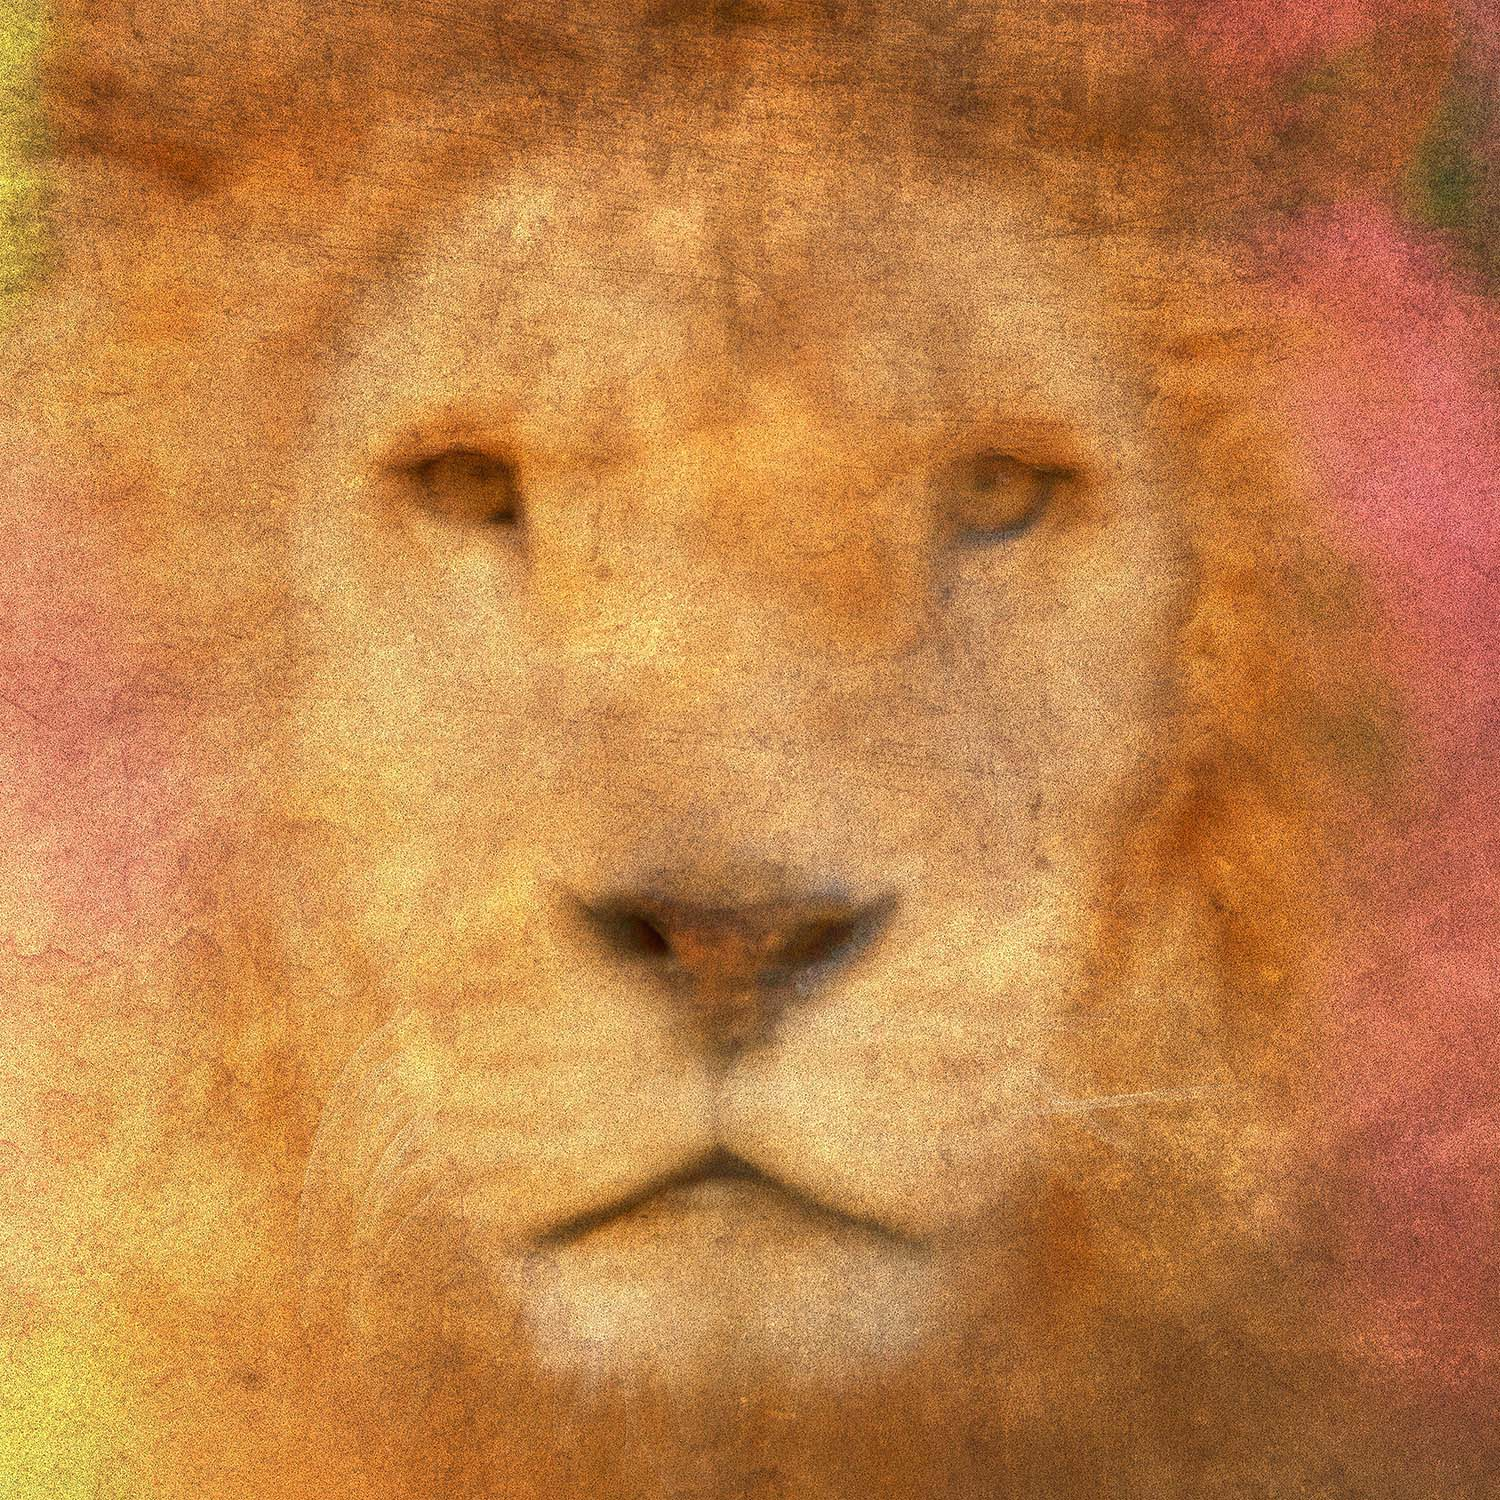 Voeux d'Artistes - Lion - Photographe Paul-Louis LEGER Marseille